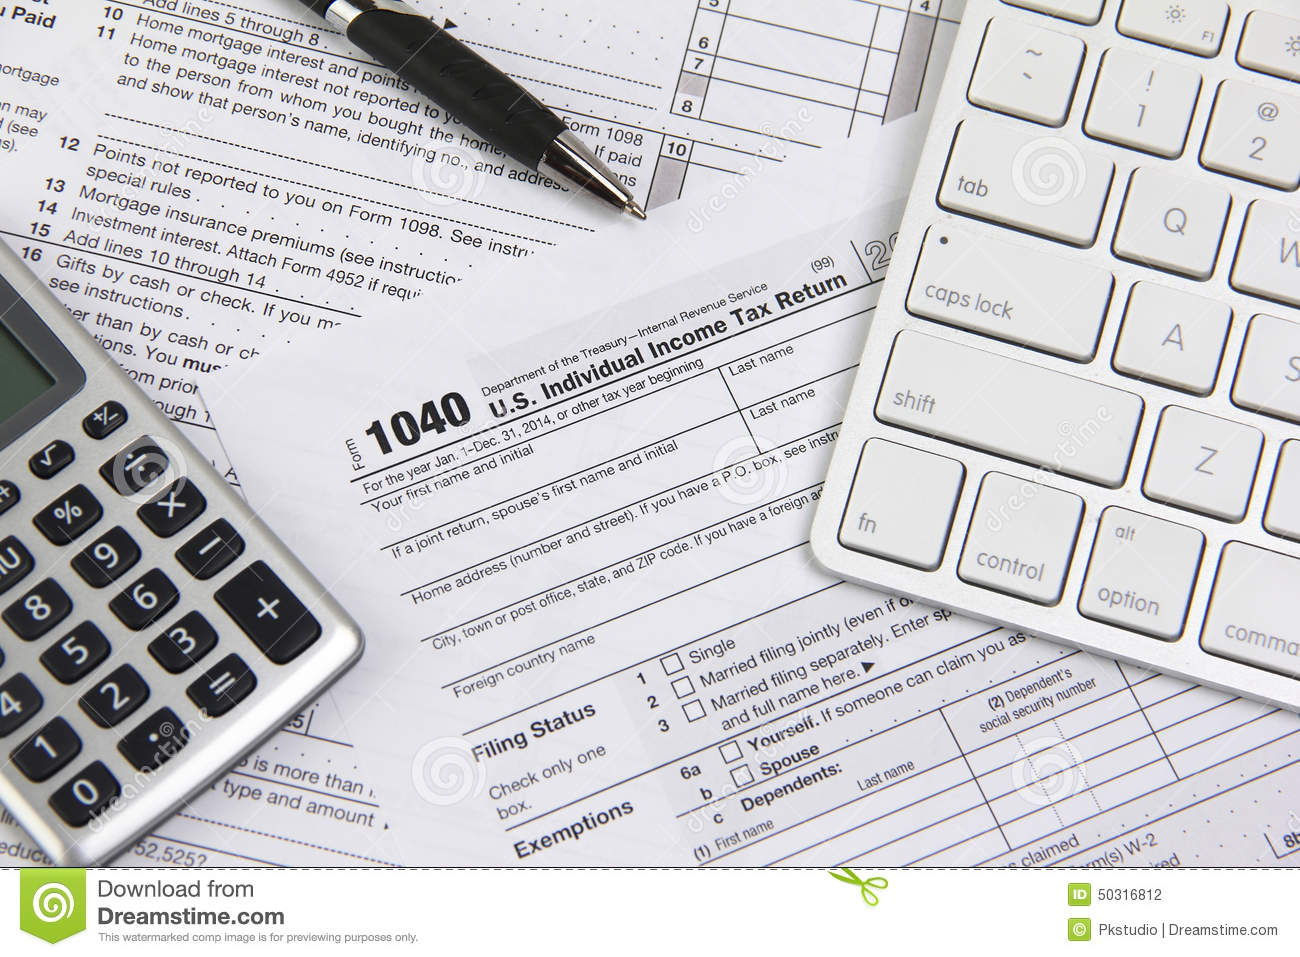 acceptance of electronic tax filing system essay One of the most successful e-government initiatives, the electronic filing system (efiling), allows tax returns to be filed electronically despite many taxpayers adopting this method, a large number are still using the traditional manual method of filing tax returns.